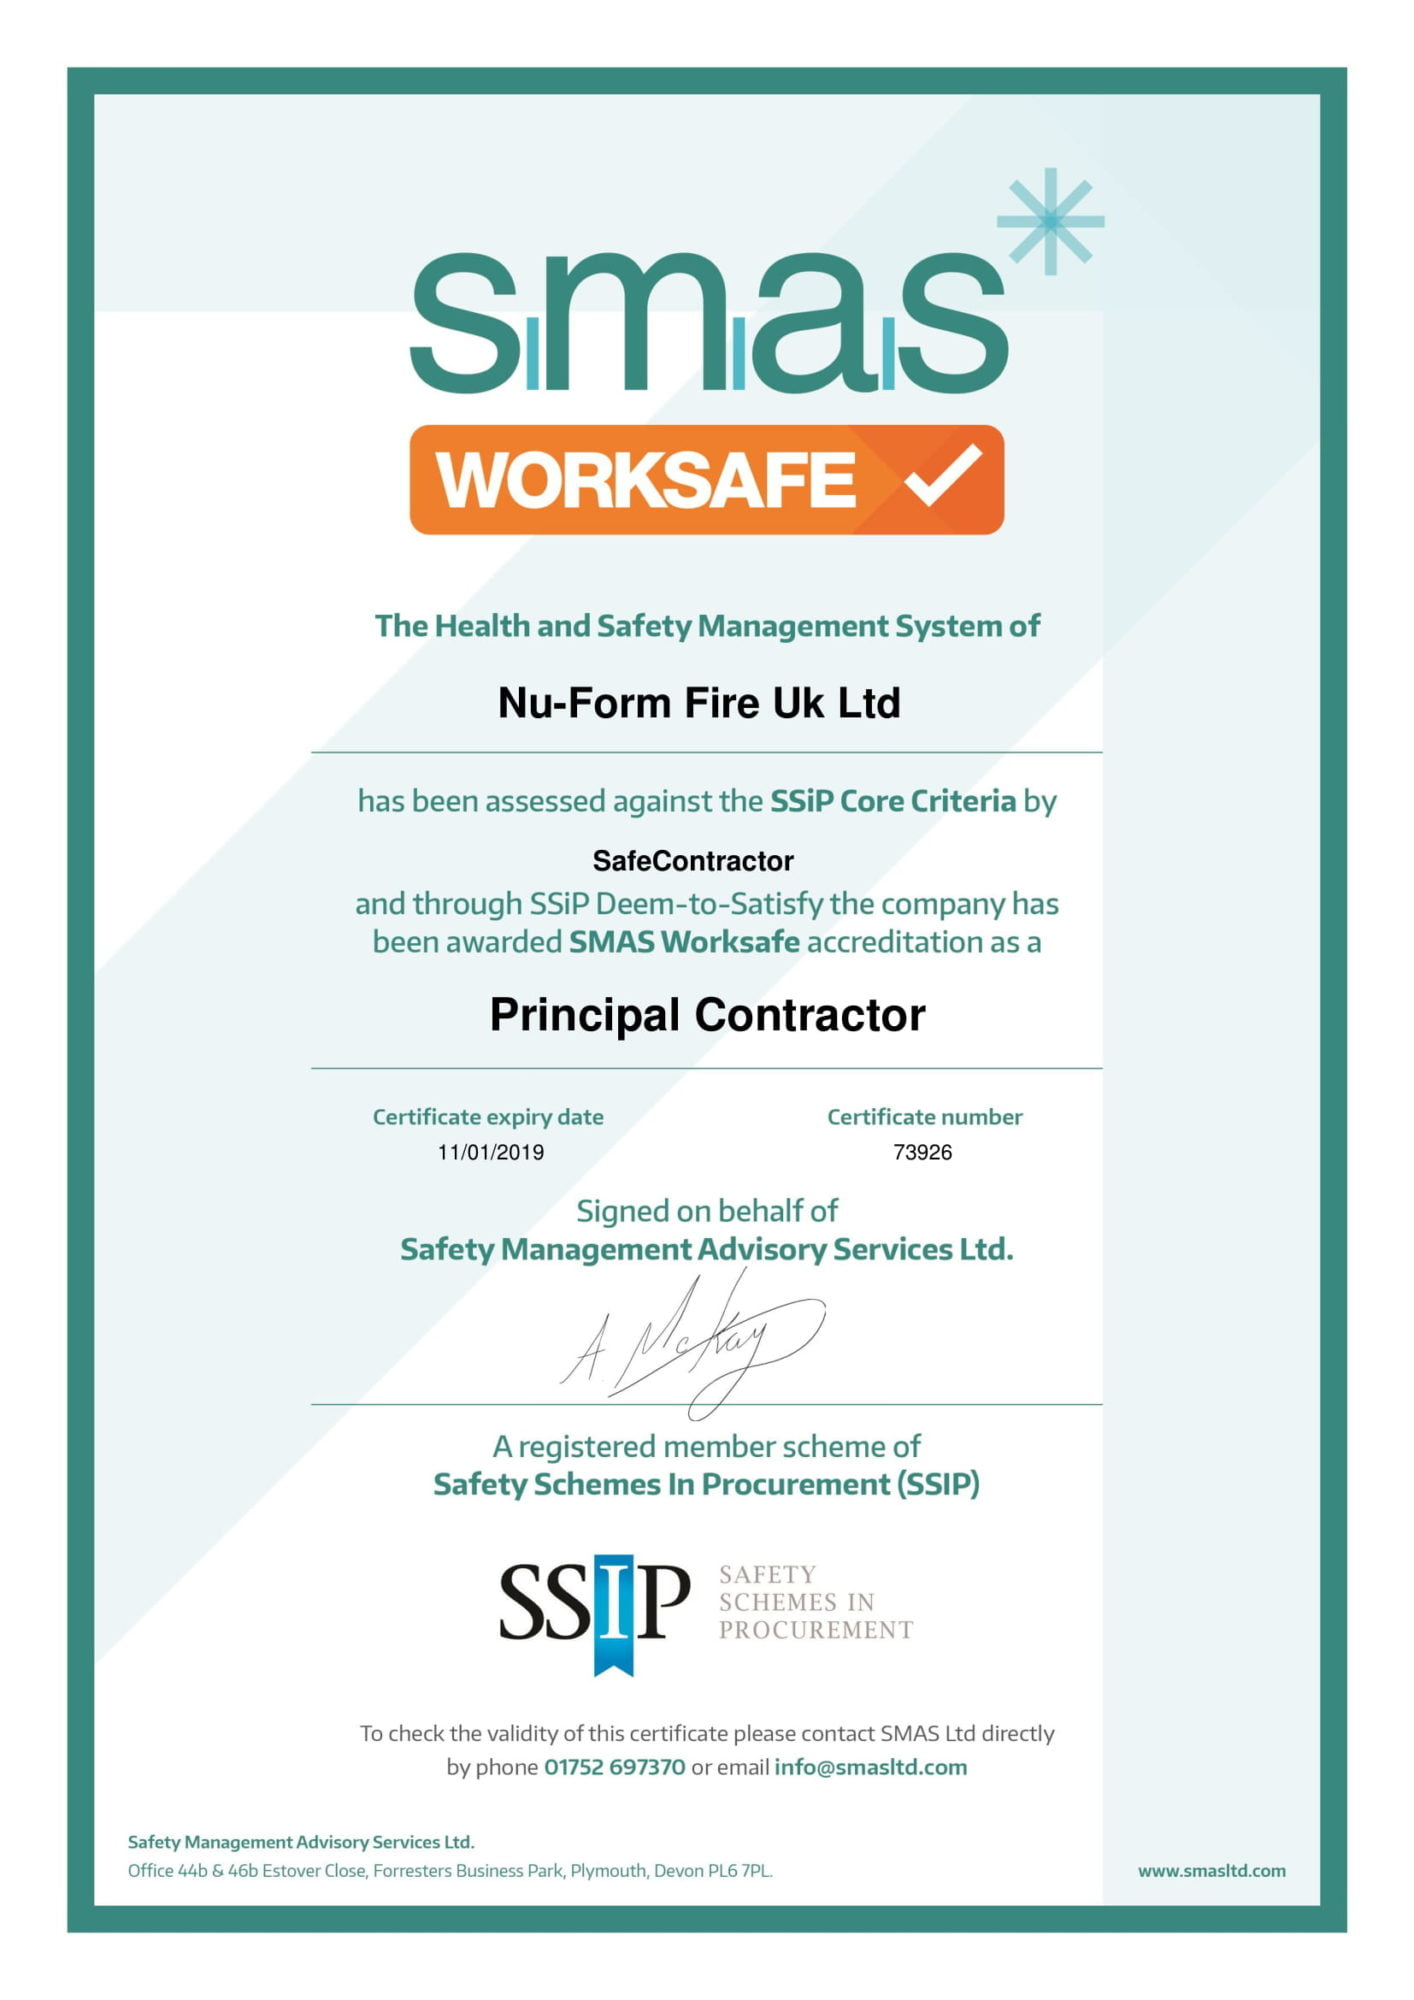 SMAS Principal Contractor larger image